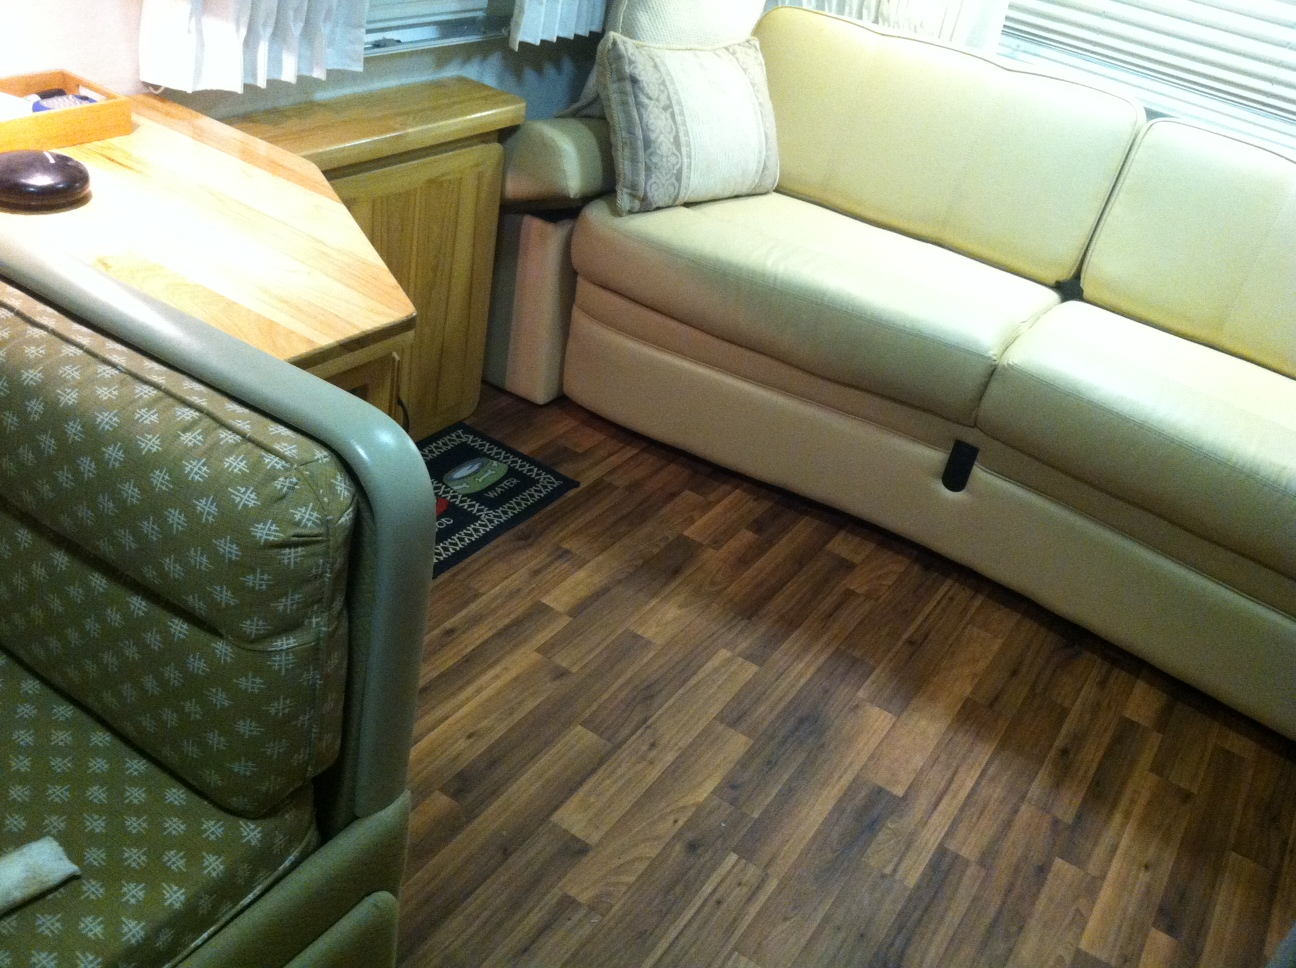 Click image for larger version  Name:Airstream lounge new floor (4).JPG Views:73 Size:517.5 KB ID:245539